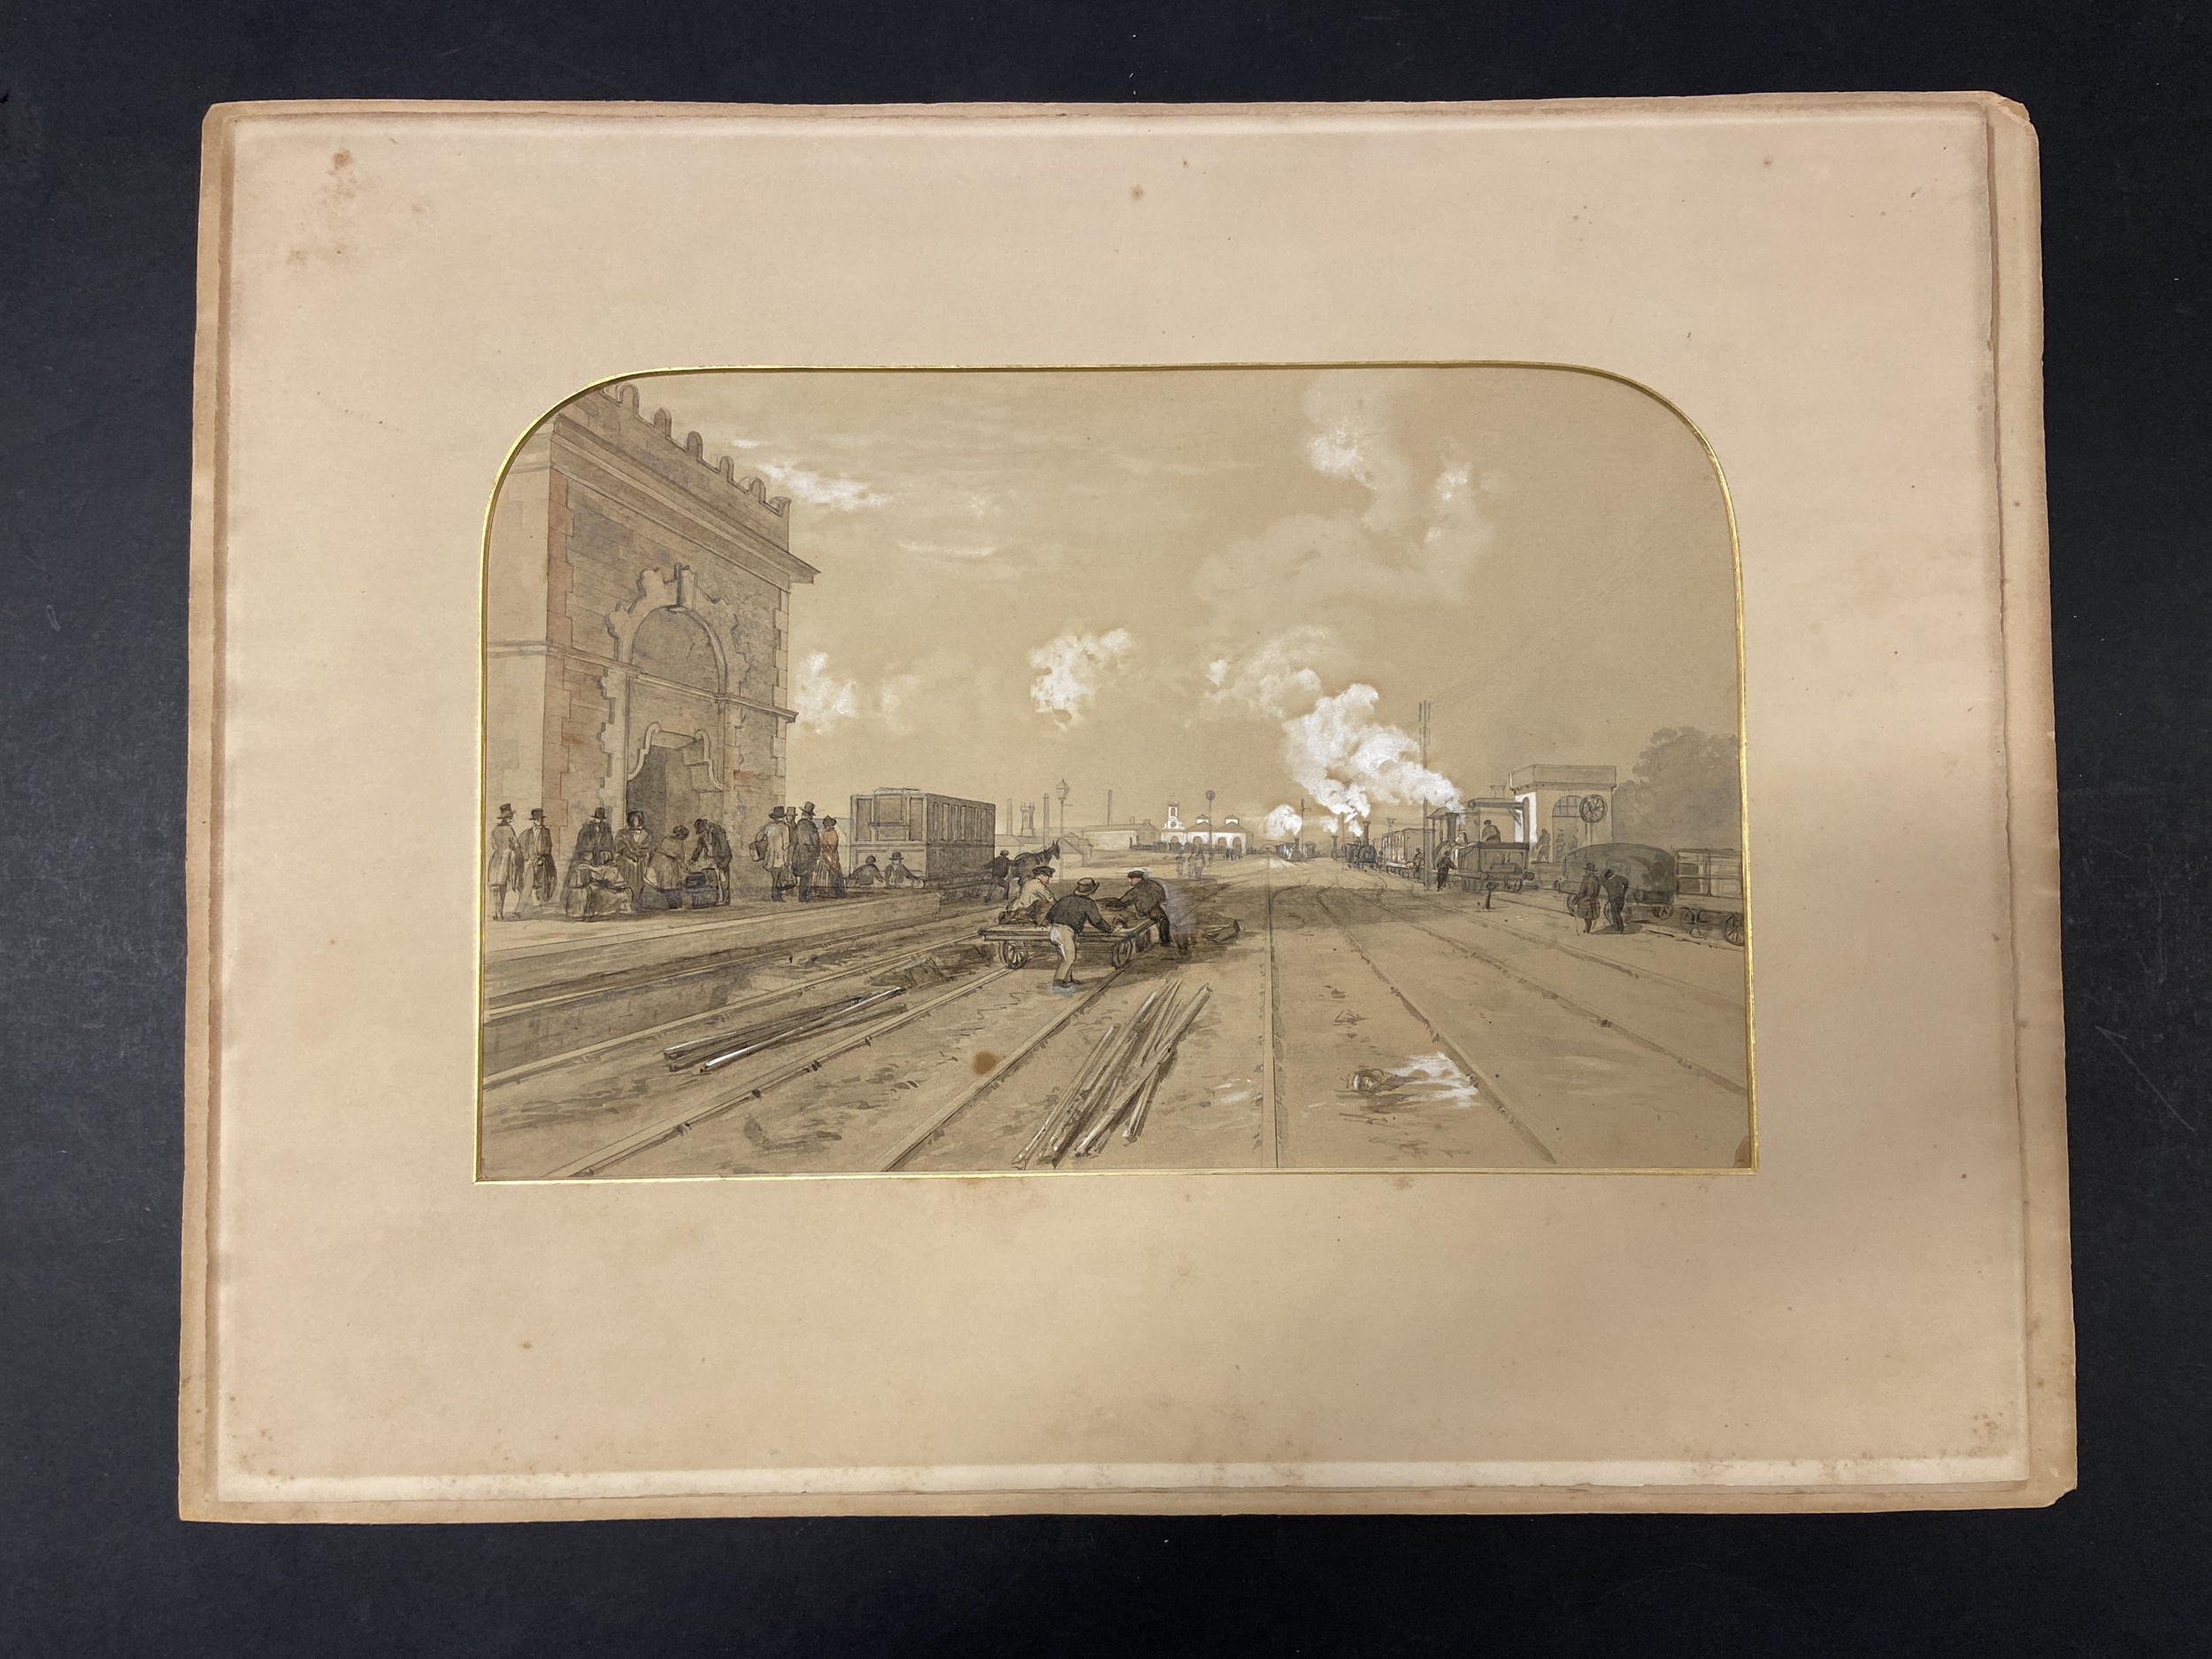 * Tait (Arthur Fitzwilliam). 7 watercolours from Views on the Manchester & Leeds Railway - Image 3 of 7